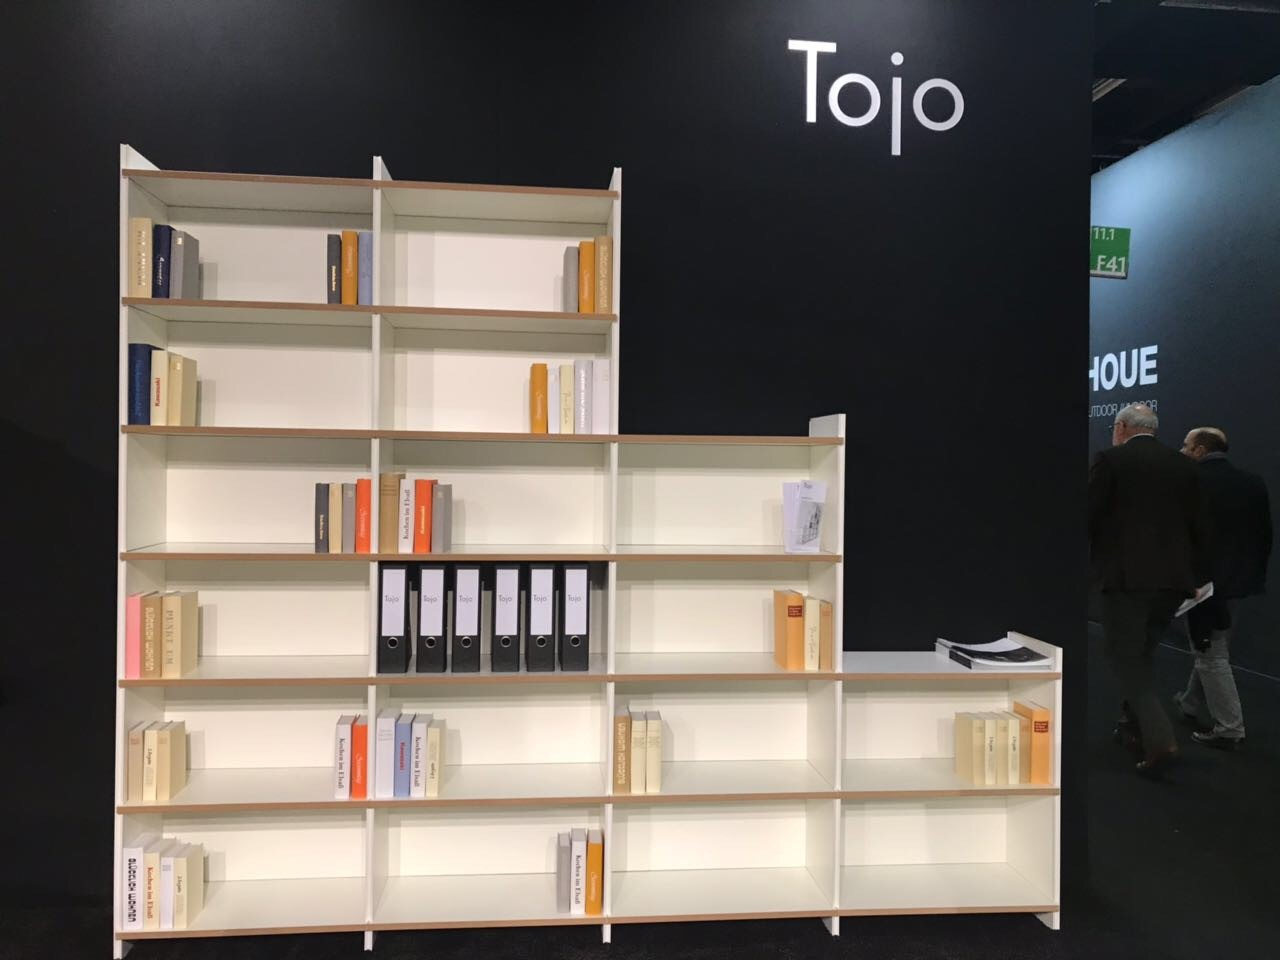 Tojo-mehrfach nominated for German Design Award 2019